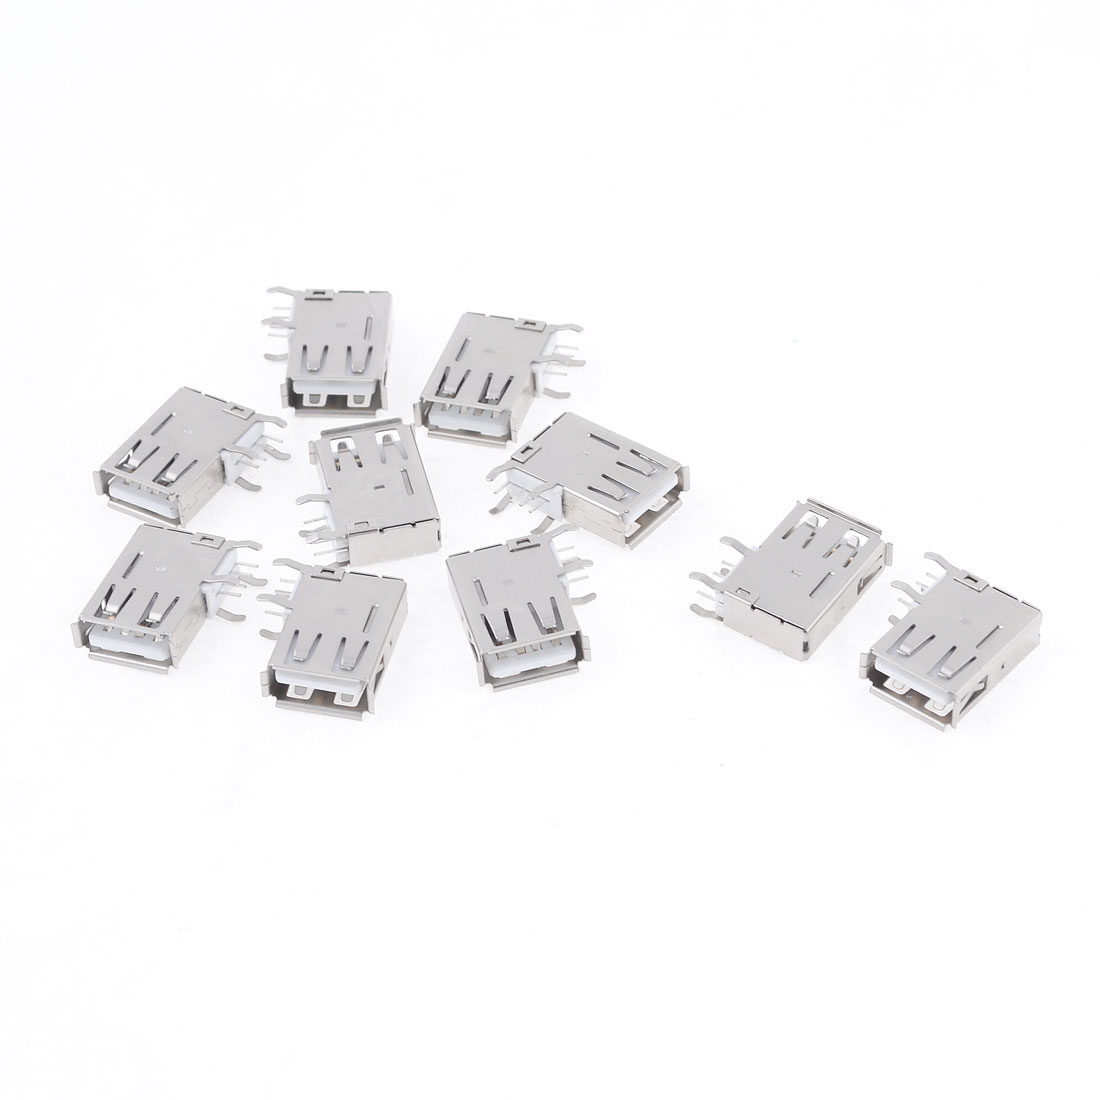 10 Pcs Side Design USB 2.0 A Female Right Angle Mount PCB Port Jack Connector